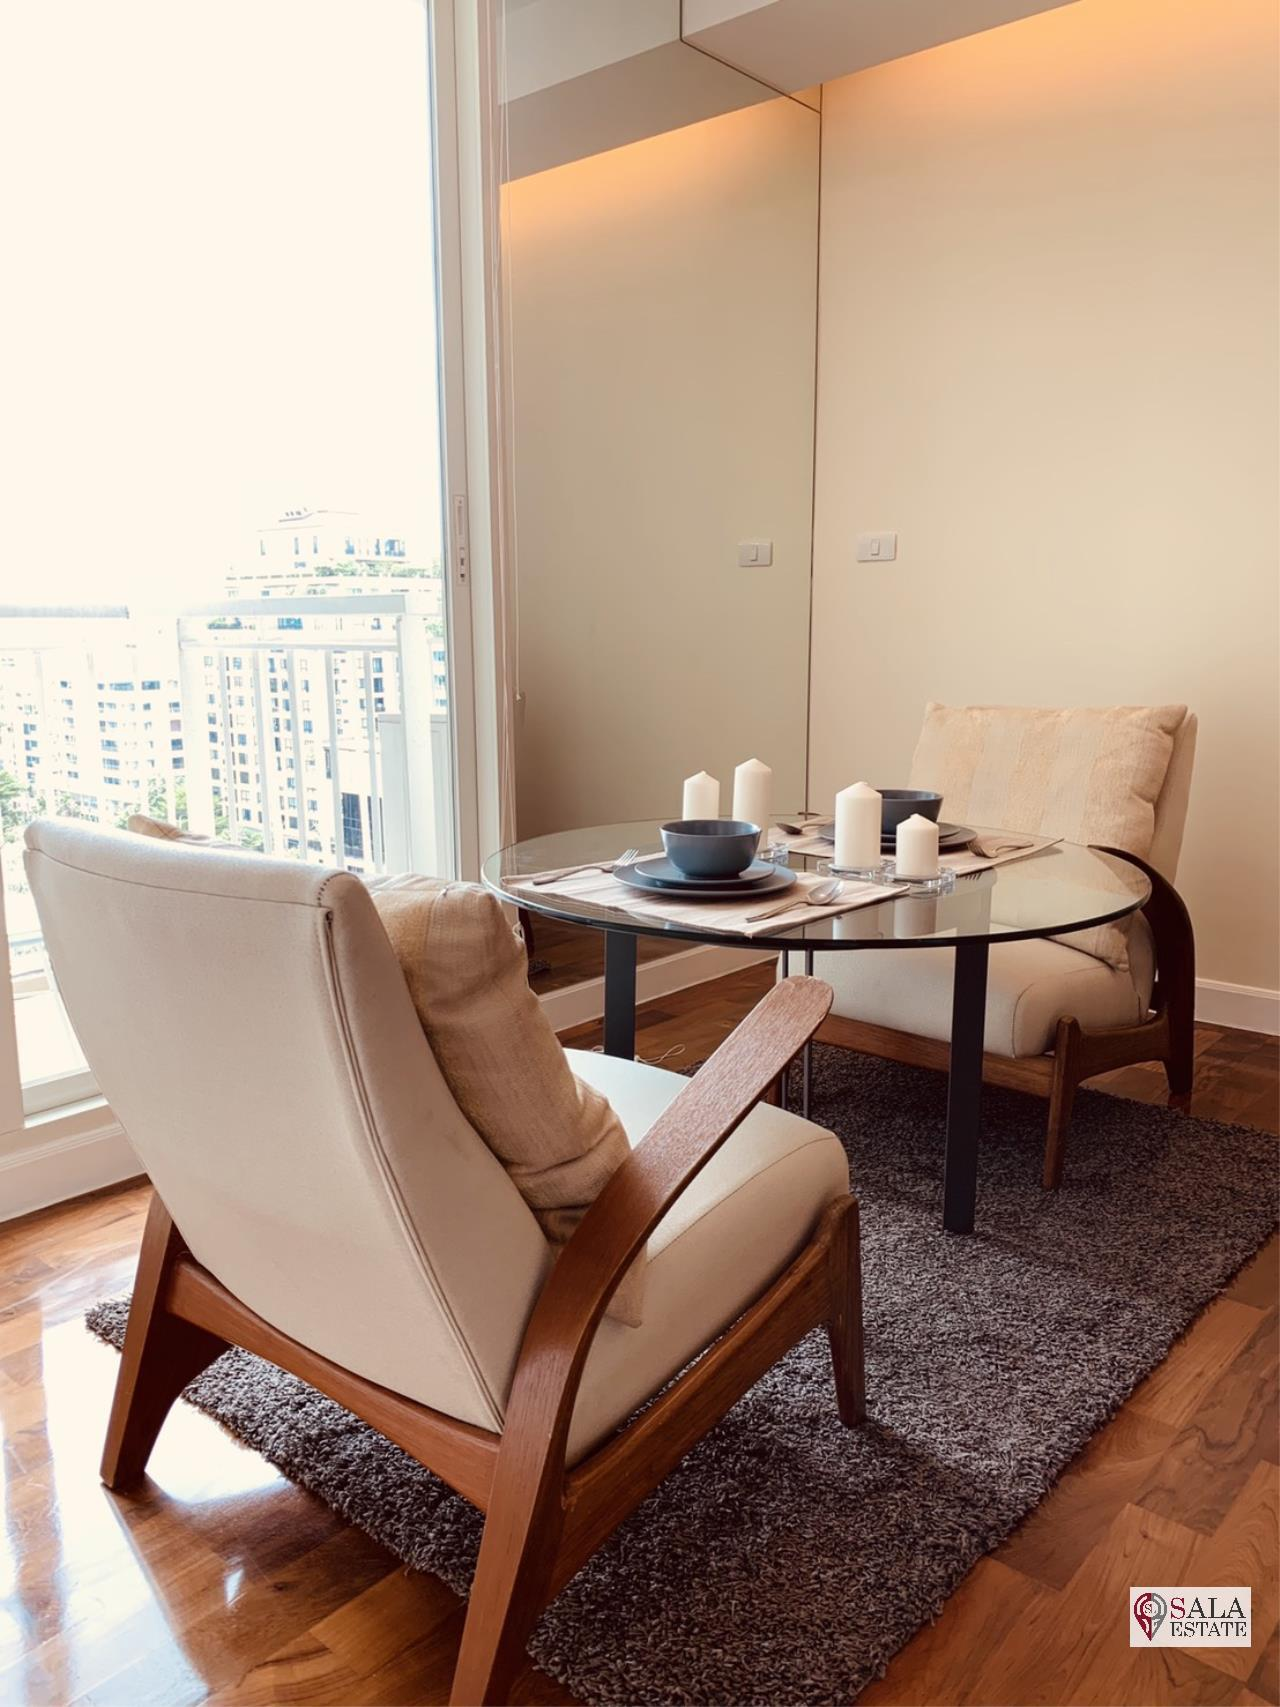 SALA ESTATE Agency's ( FOR RENT ) BAAN SIRI 31 – BTS PHROM PHONG, 58 SQM 1 BEDROOM 1 BATHROOM, FULLY FURNISHED, CITY VIEW 6